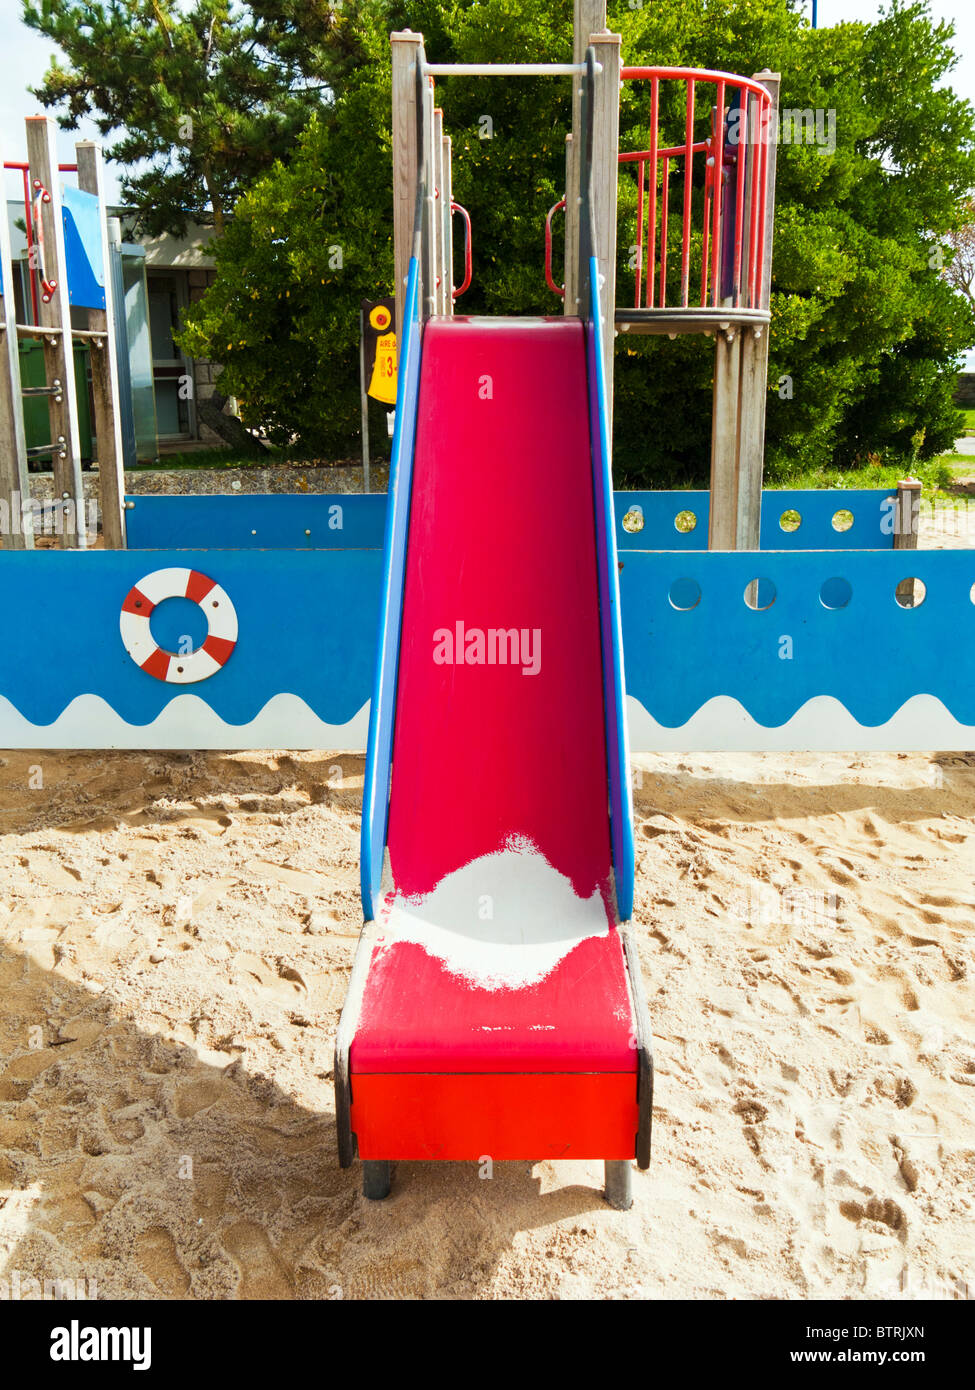 Childrens Play Area with slide - Stock Image